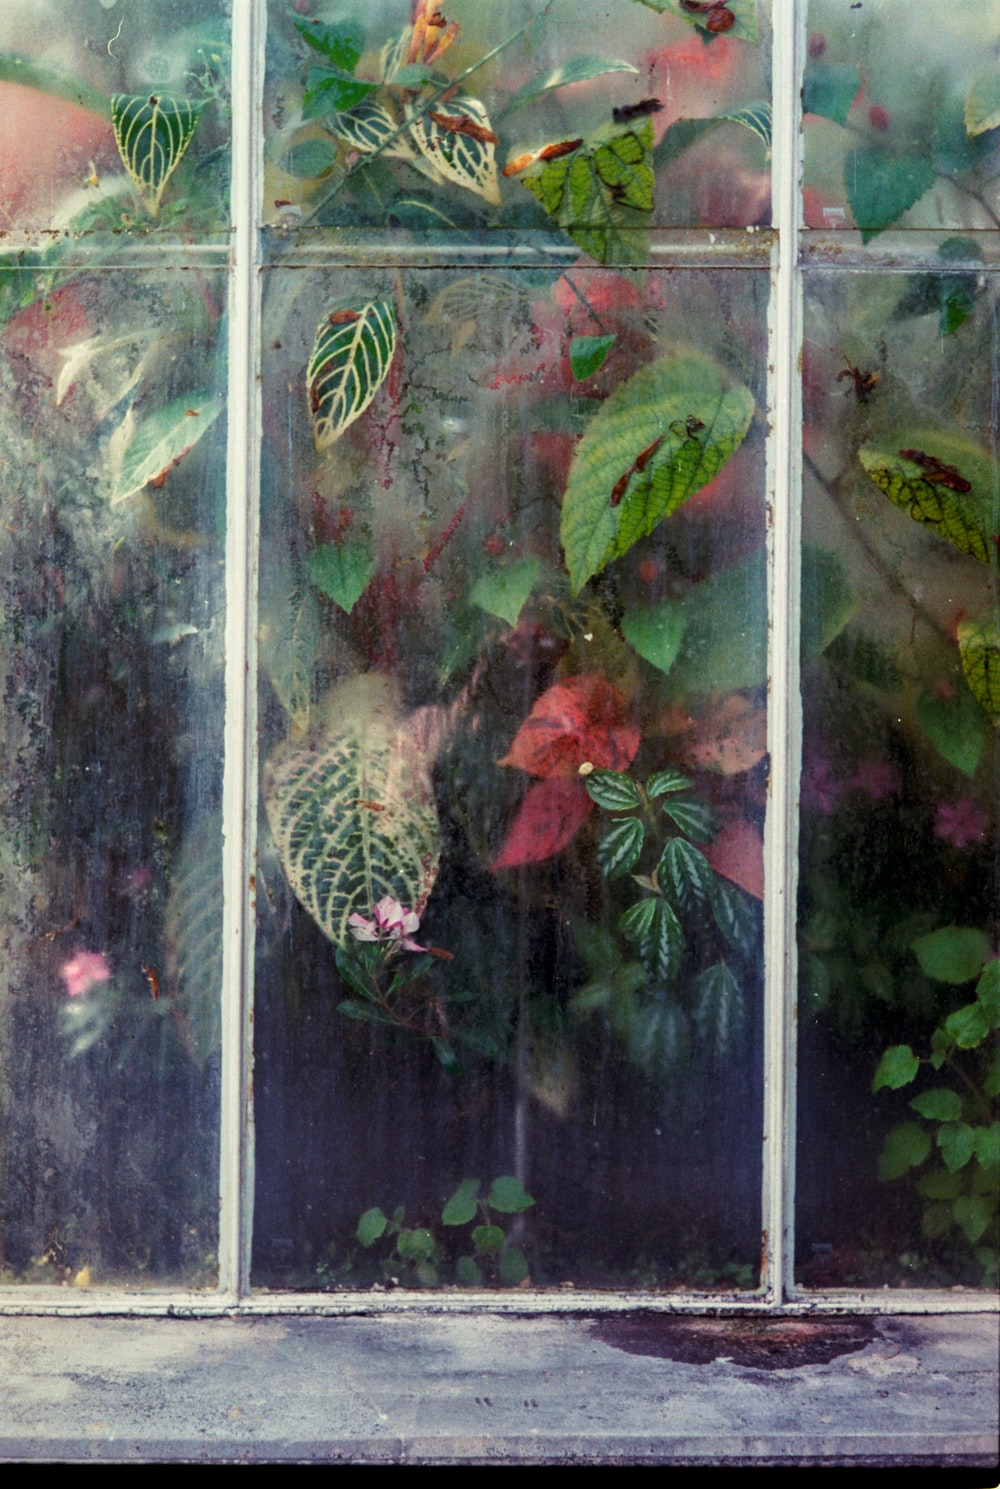 green-leafed plant behind a clear glass window